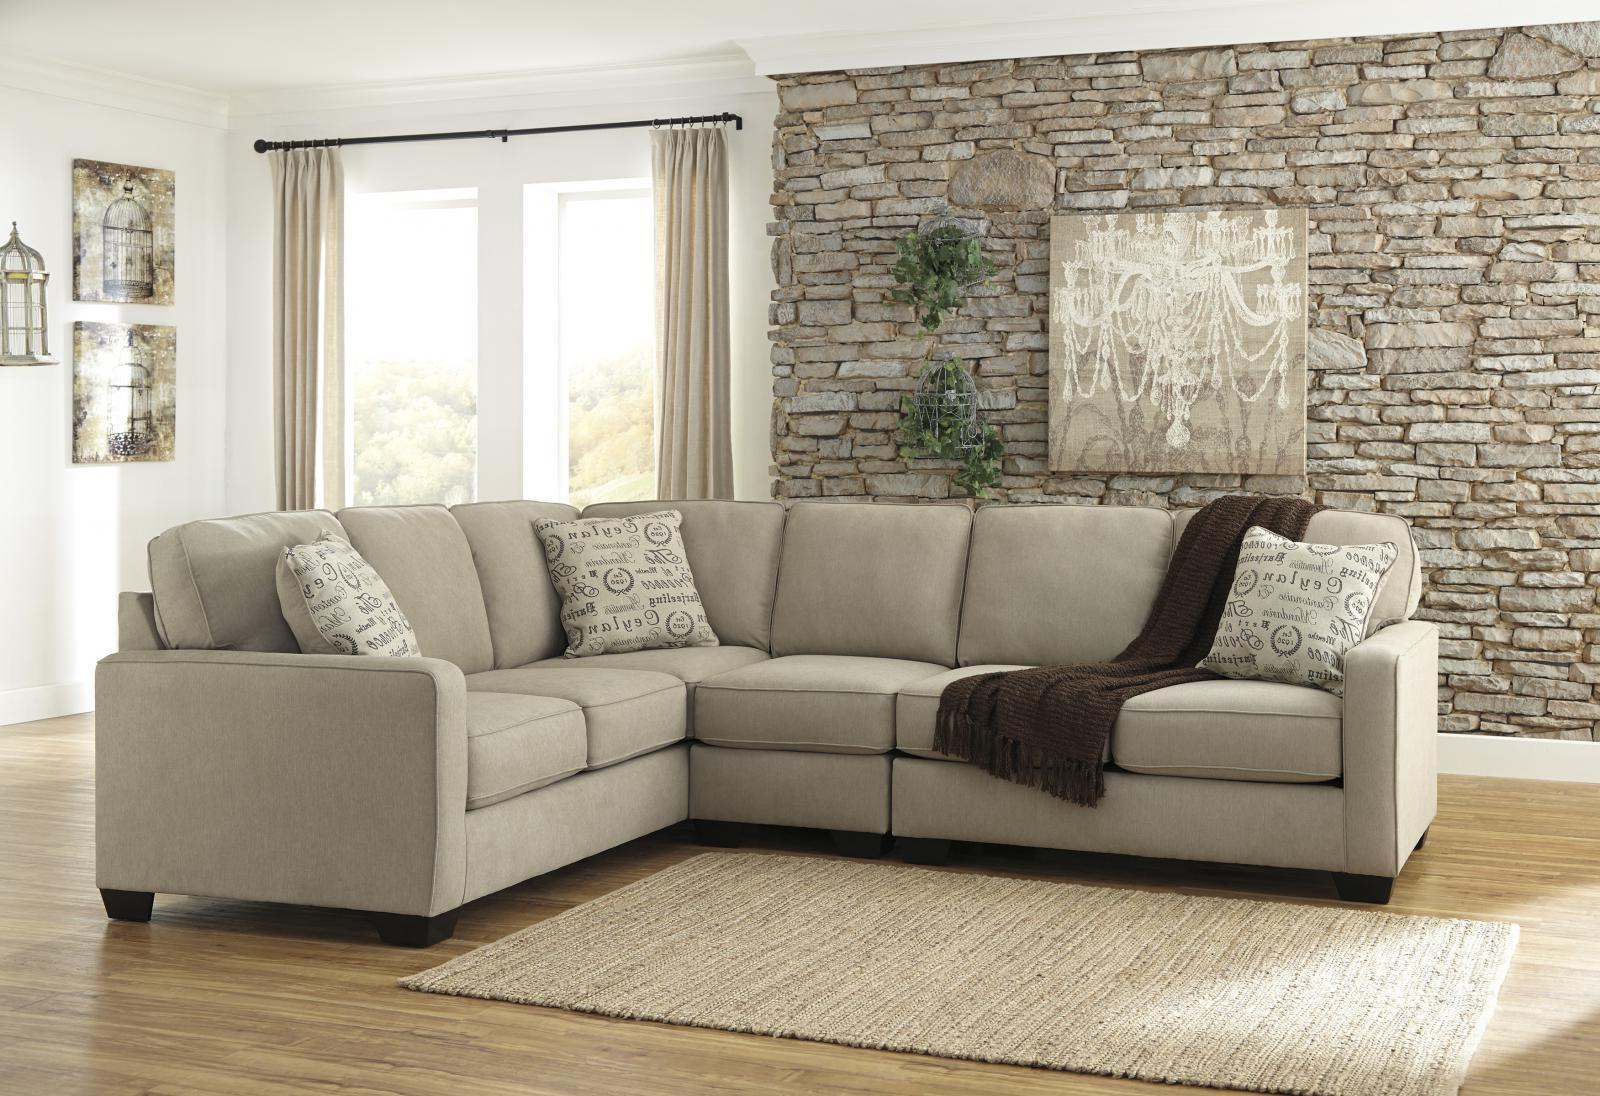 Ashley Alenya Living Room Sectional with Armless Chair in Quartz Right Facing